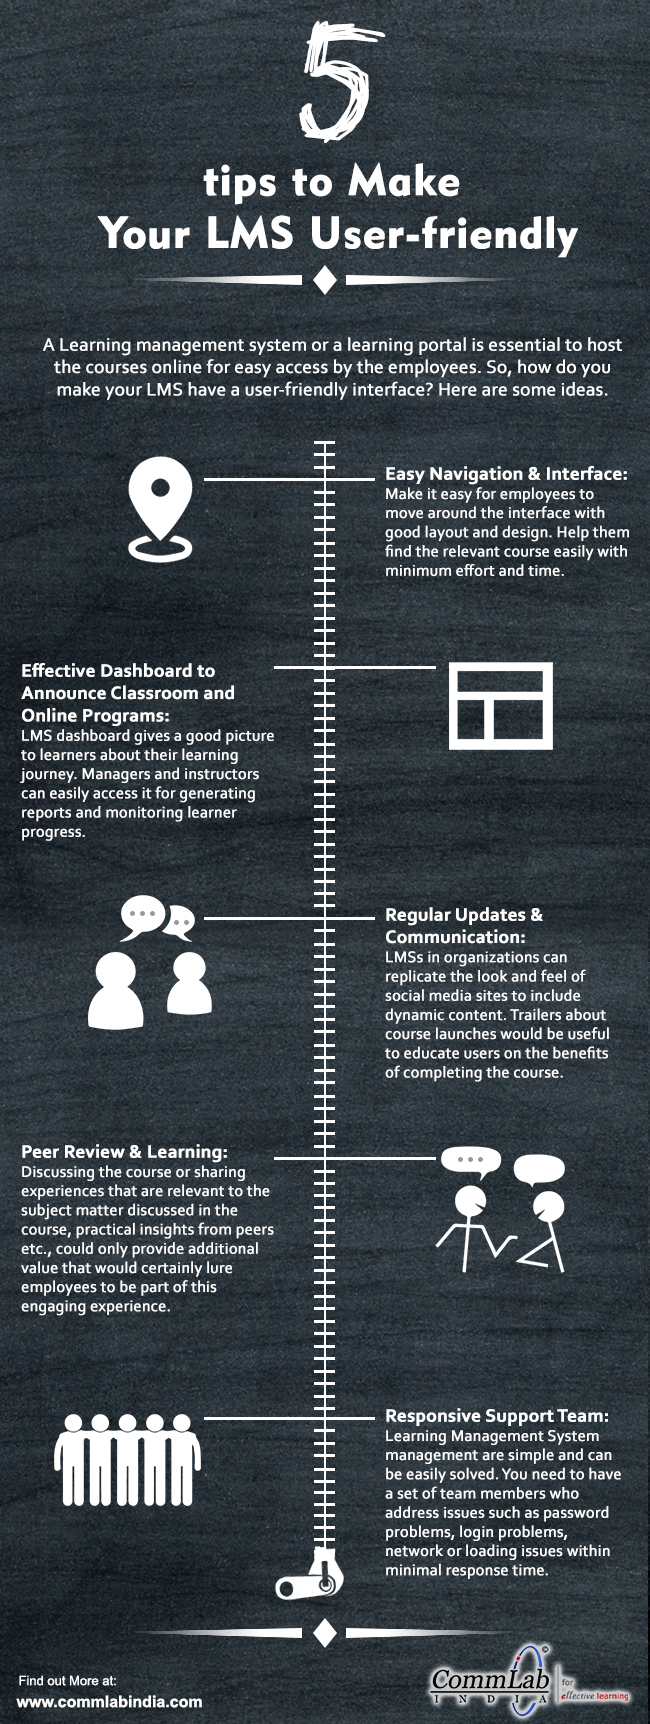 How to Make the LMS Platform User-friendly? [Infographic]